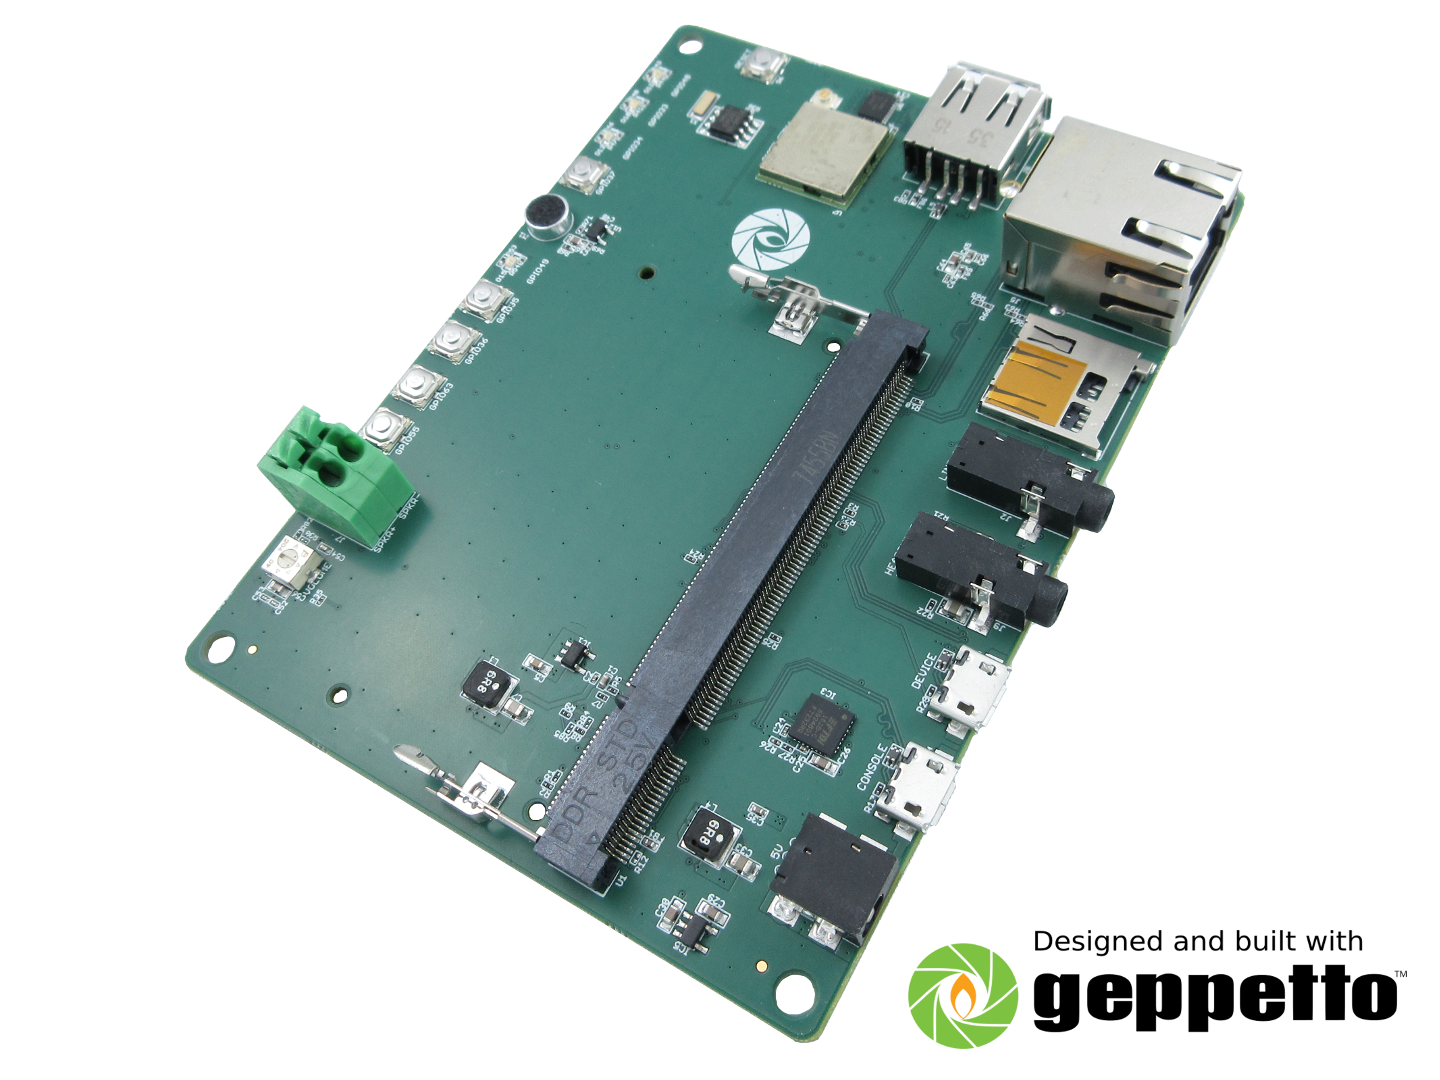 Gumstix Colibri iMX7 Chatterbox (Amazon Alexa Voice Service evaluation board) image